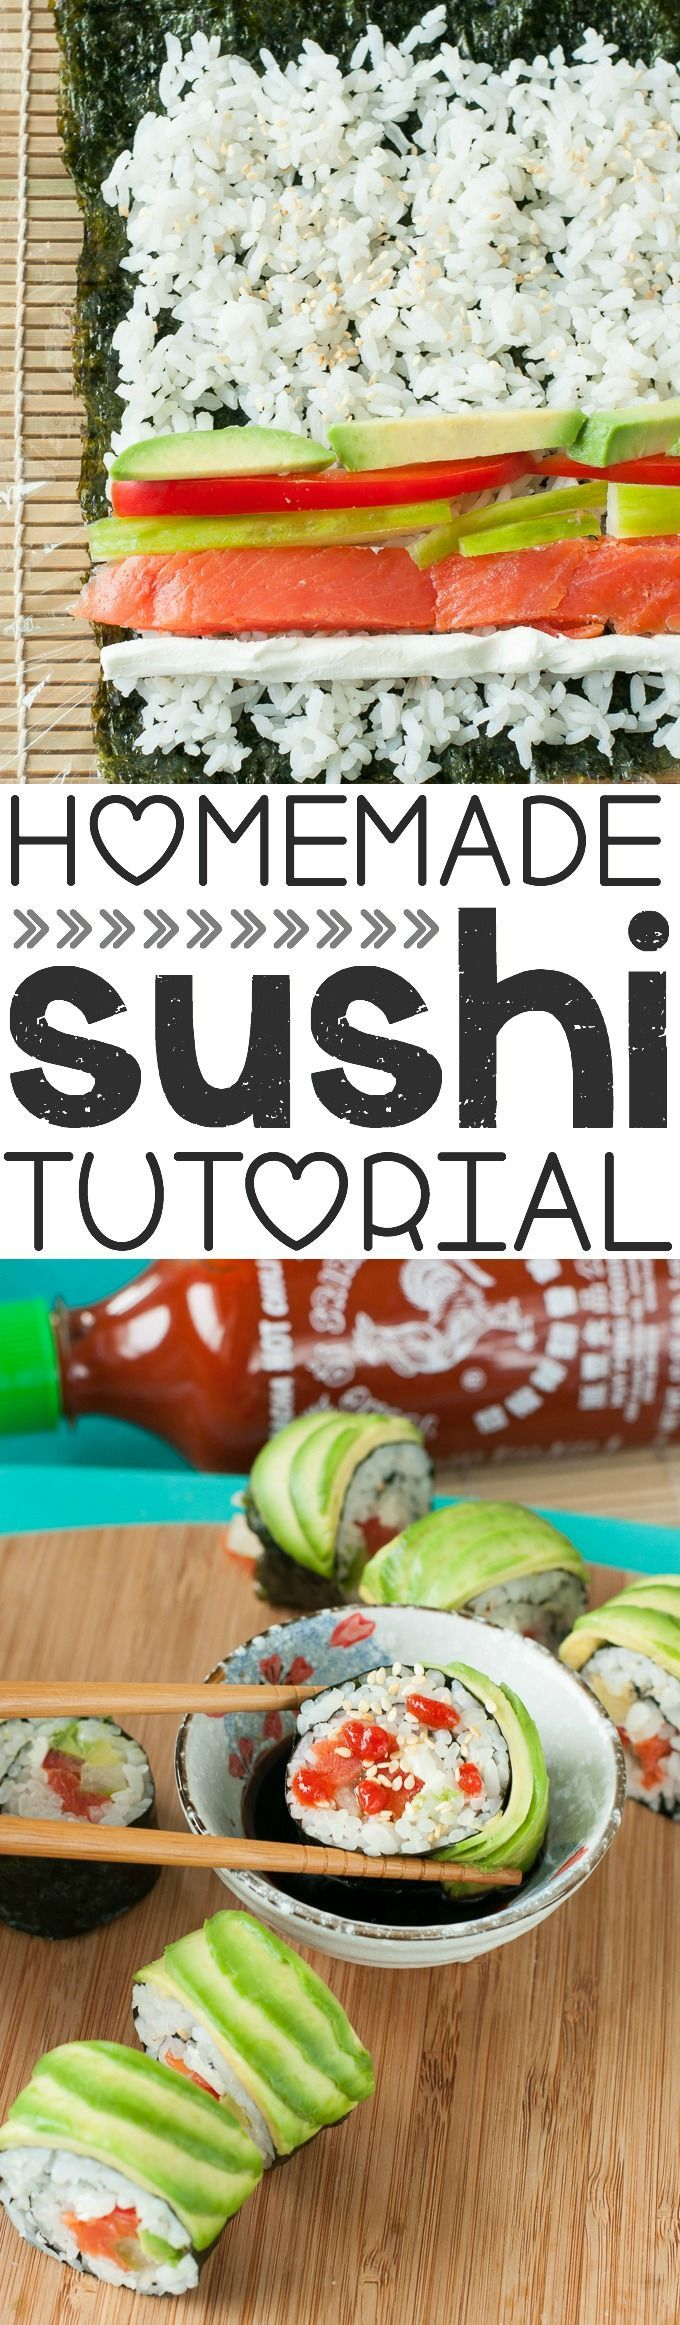 Homemade Sushi: Tips, Tricks, and Recipes for delicious at-home sushi rolls from the basic california roll to the always-awesome avocado wrapped rolls!